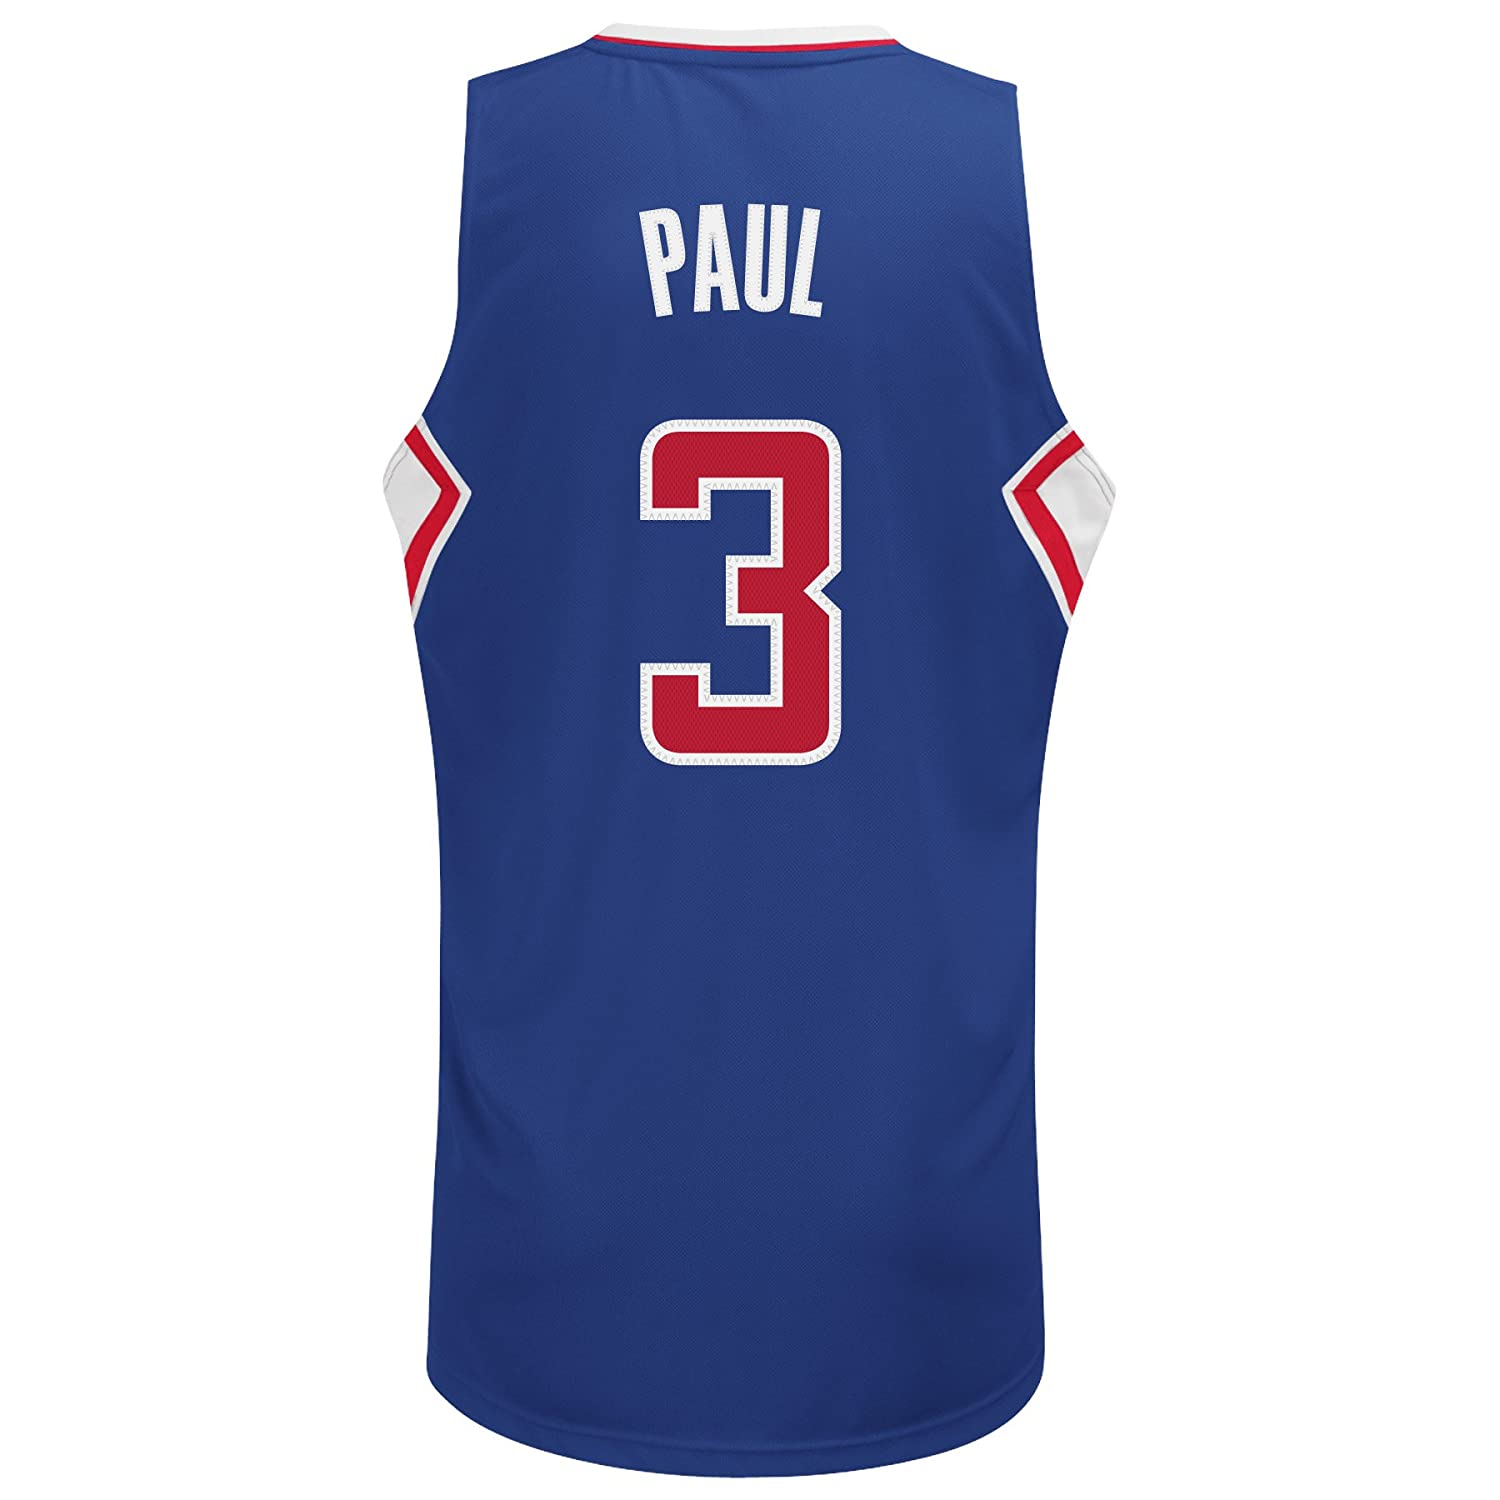 05eab9fb96f3 Amazon.com   NBA Los Angeles Clippers Blue Swingman Jersey Chris Paul  3    Sports Fan Jerseys   Sports   Outdoors